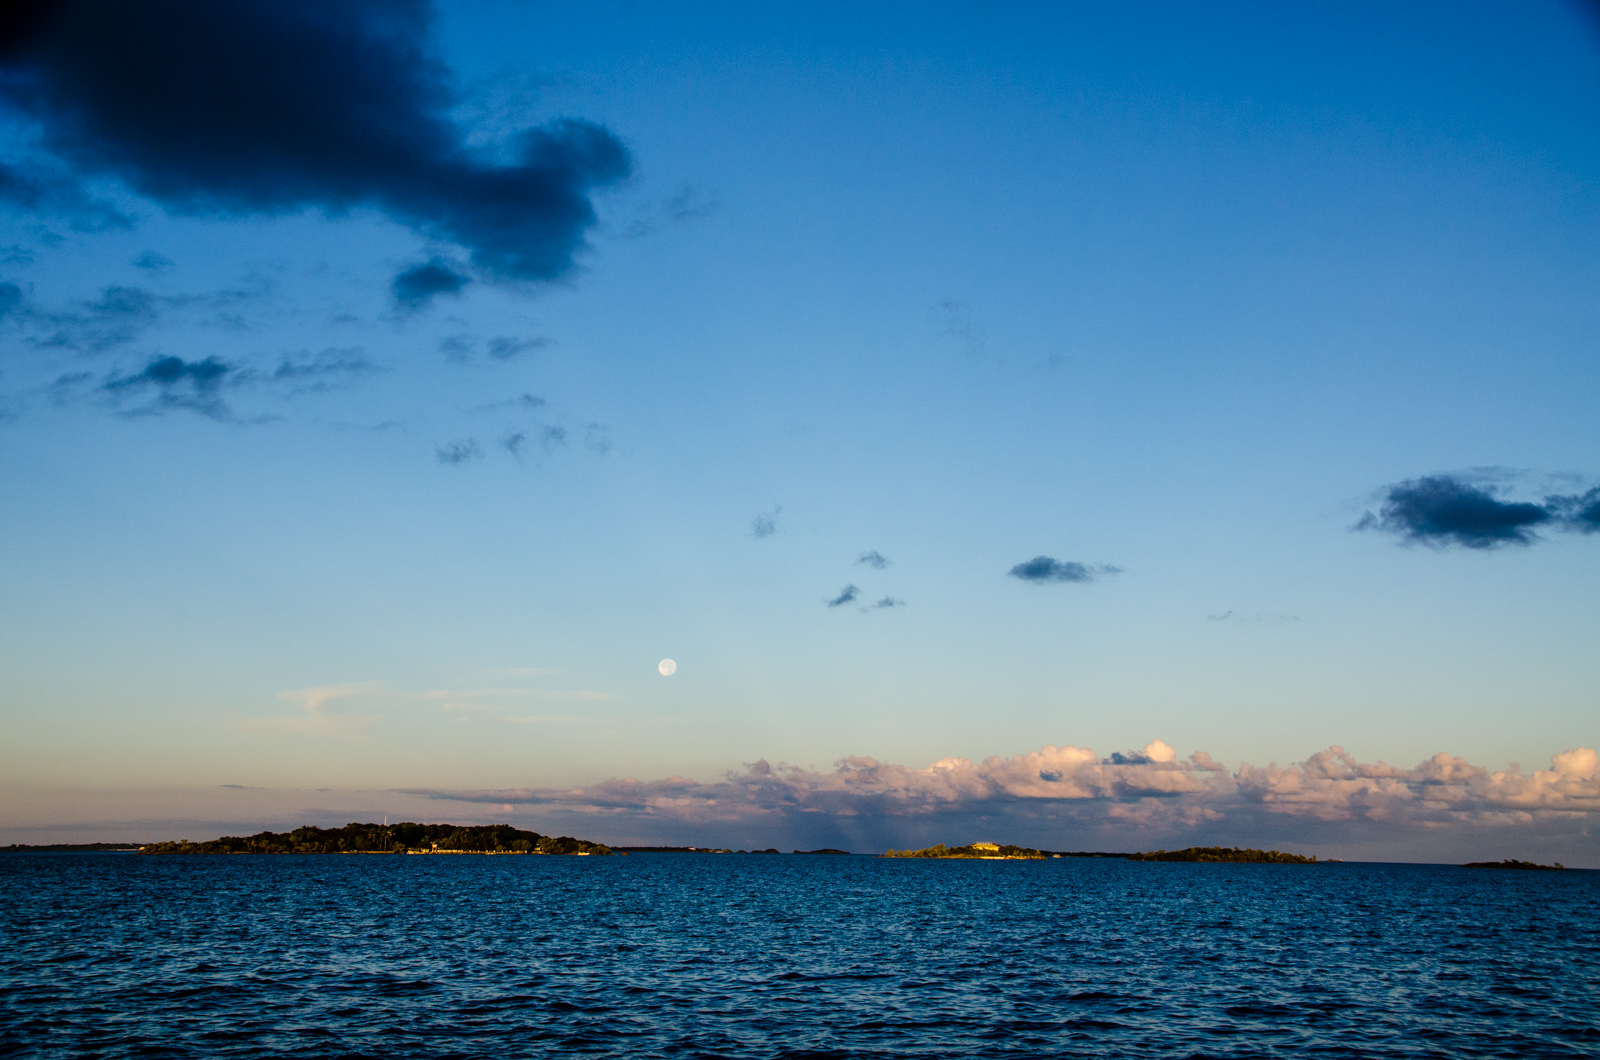 Good morning! Supermoon rise over Parrot Cays.